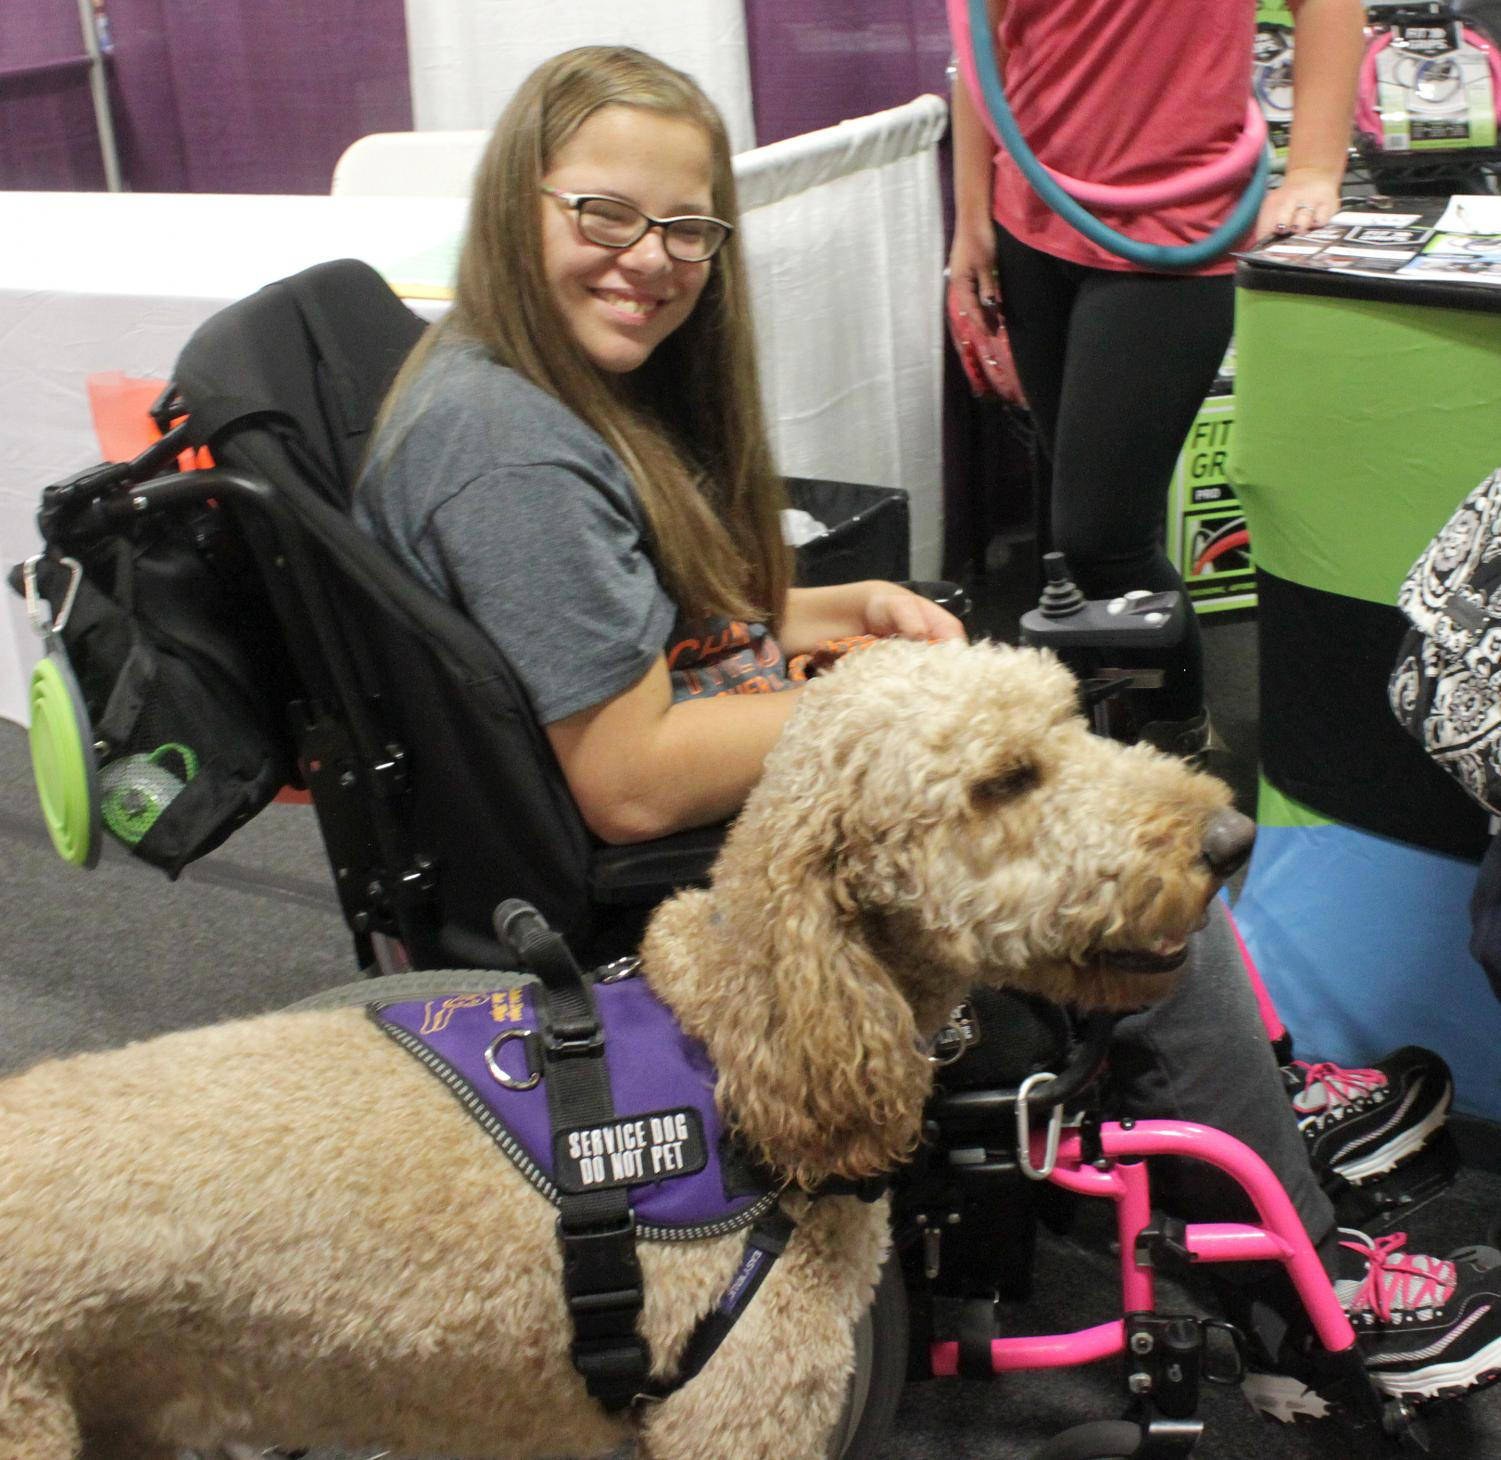 A person in a wheelchair poses for a photo during the disABILITY Resource Expo in 2017.